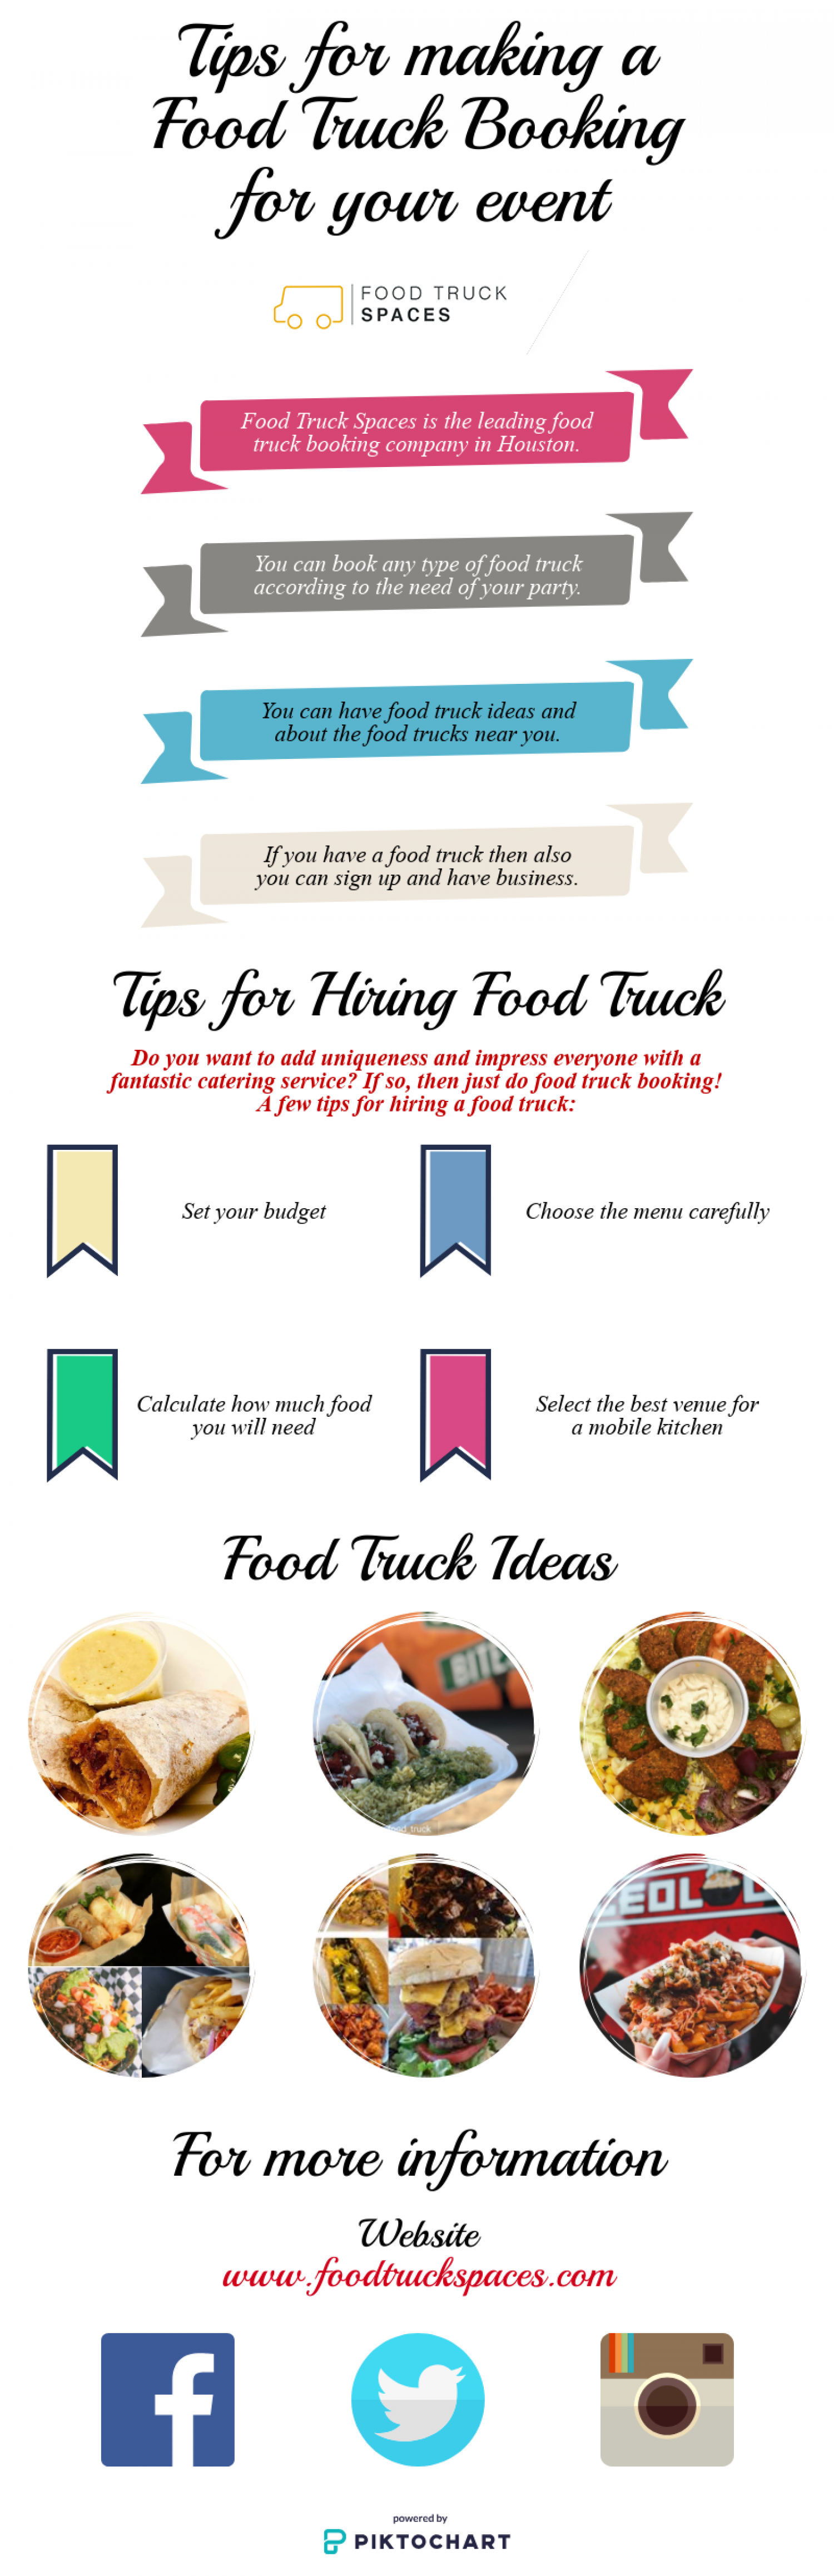 Tips for making a Food Truck Booking for your event Infographic